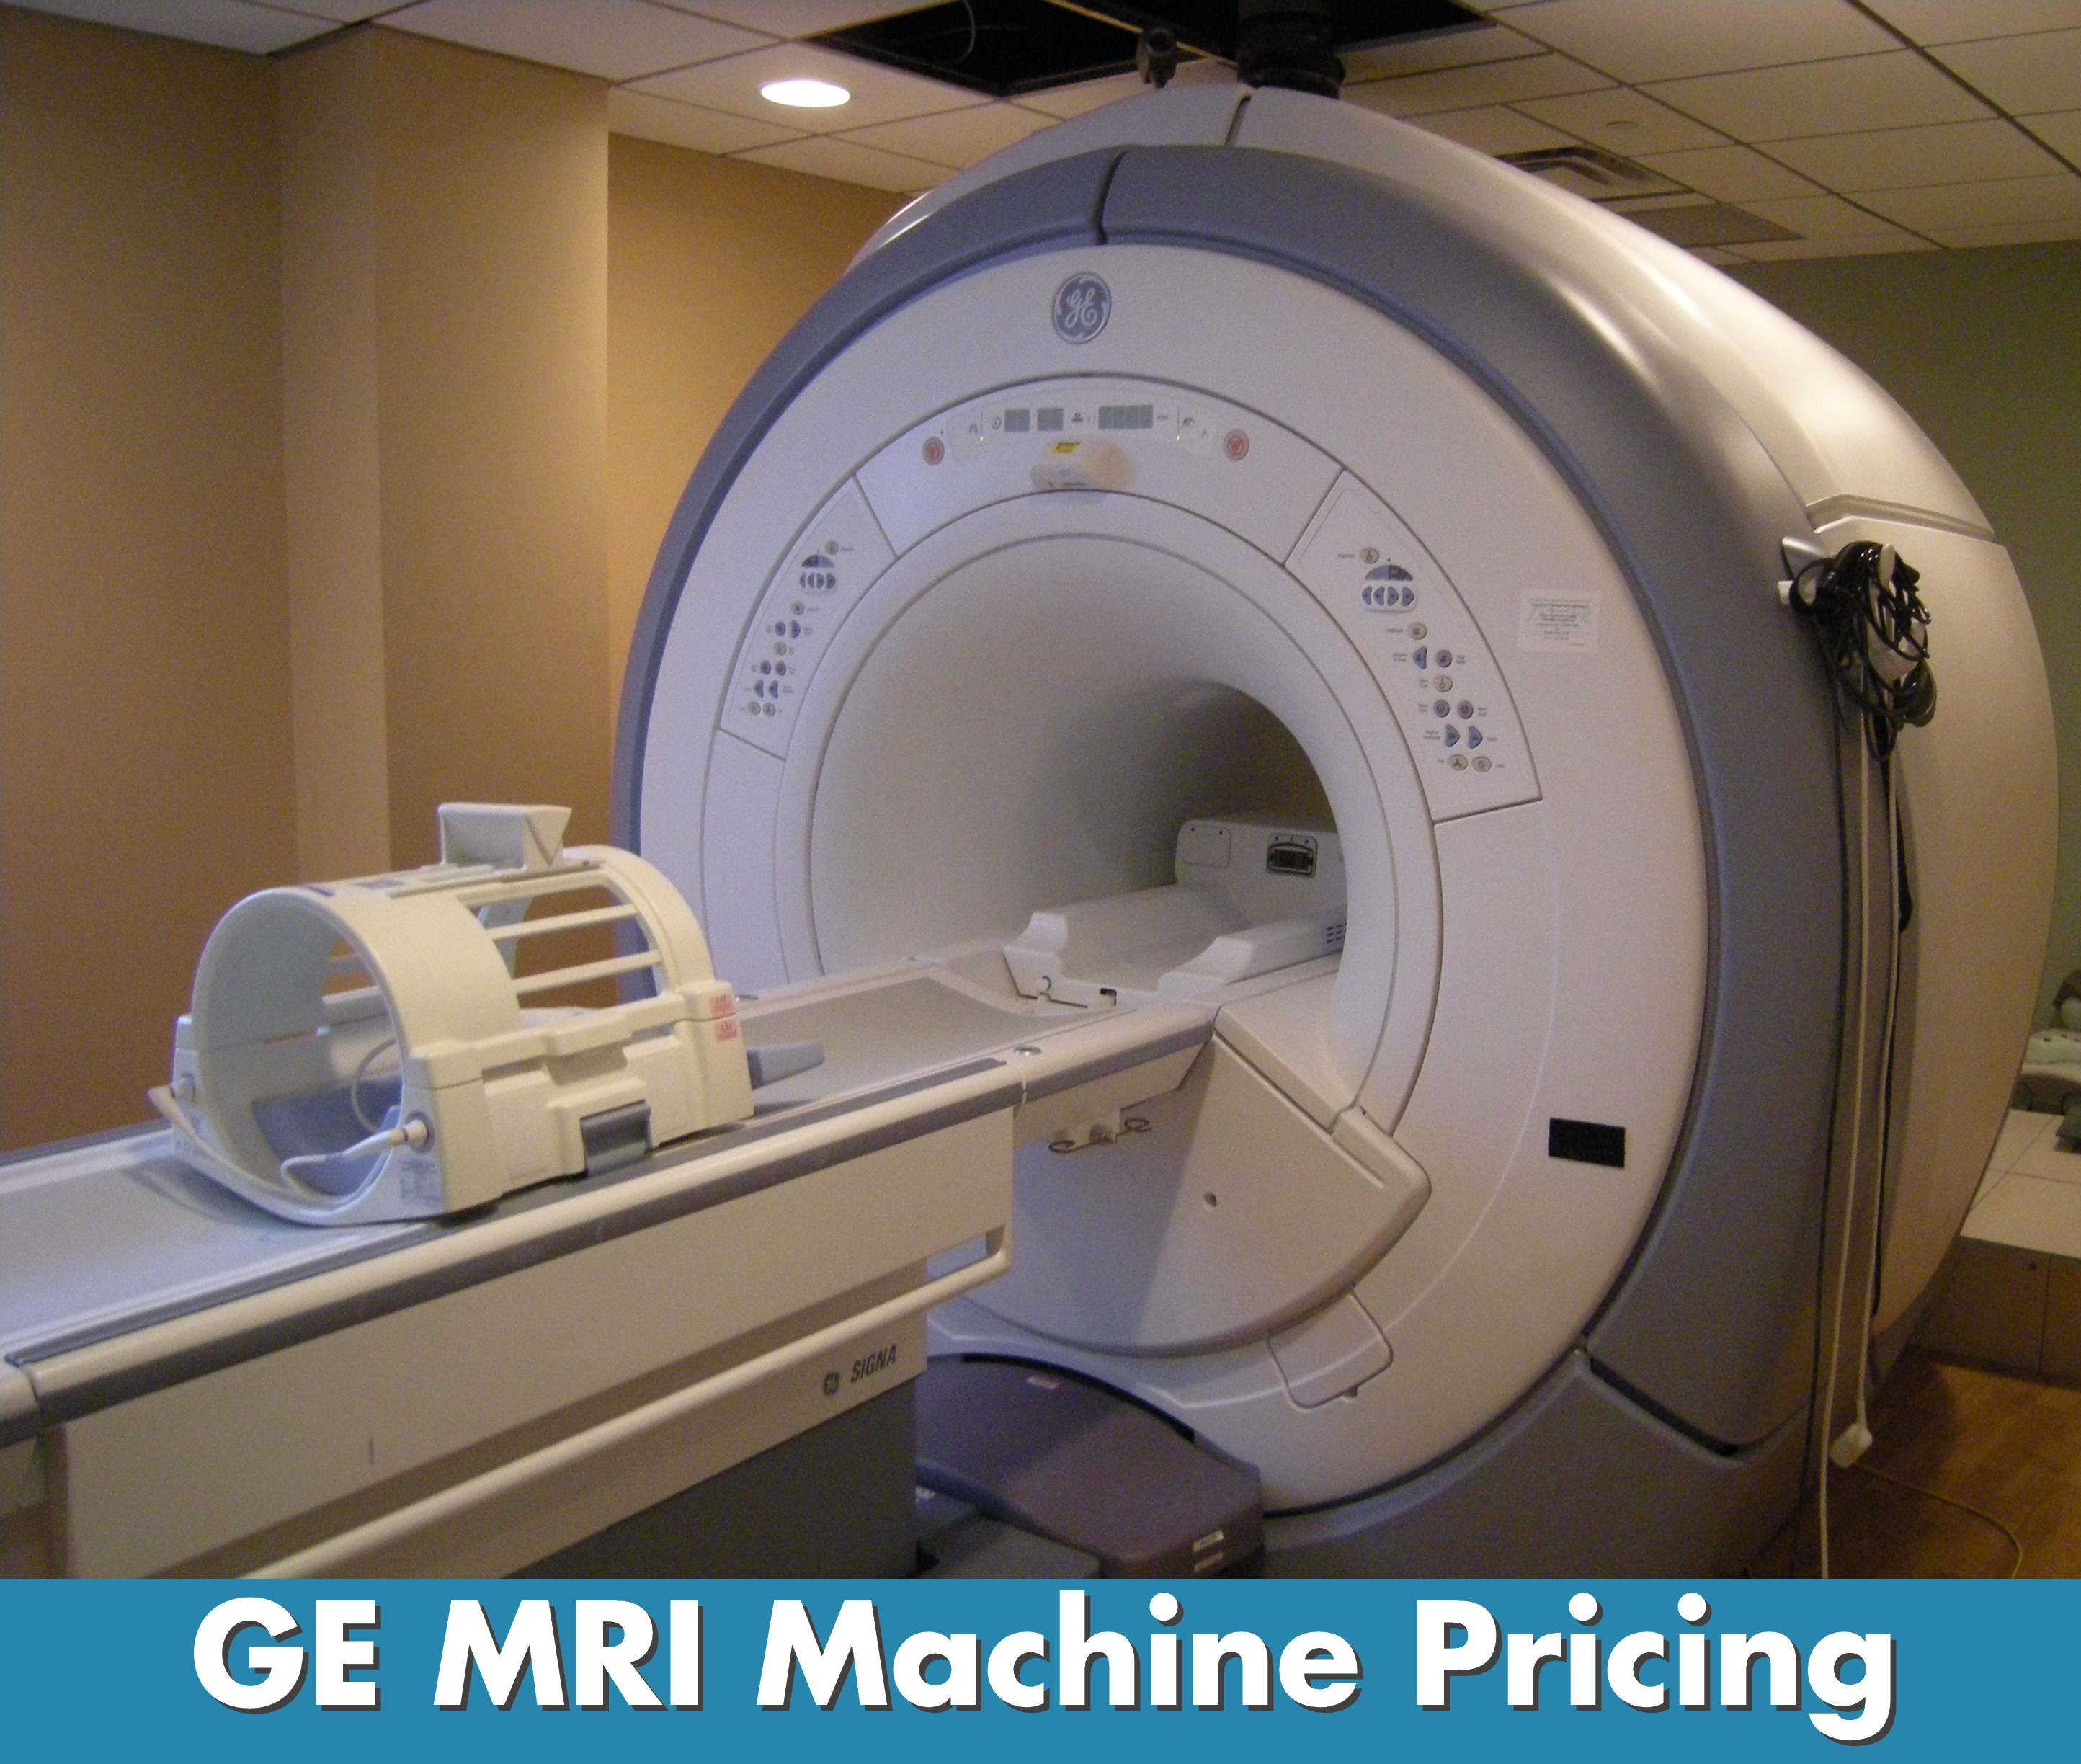 what is the cost of a mri machine